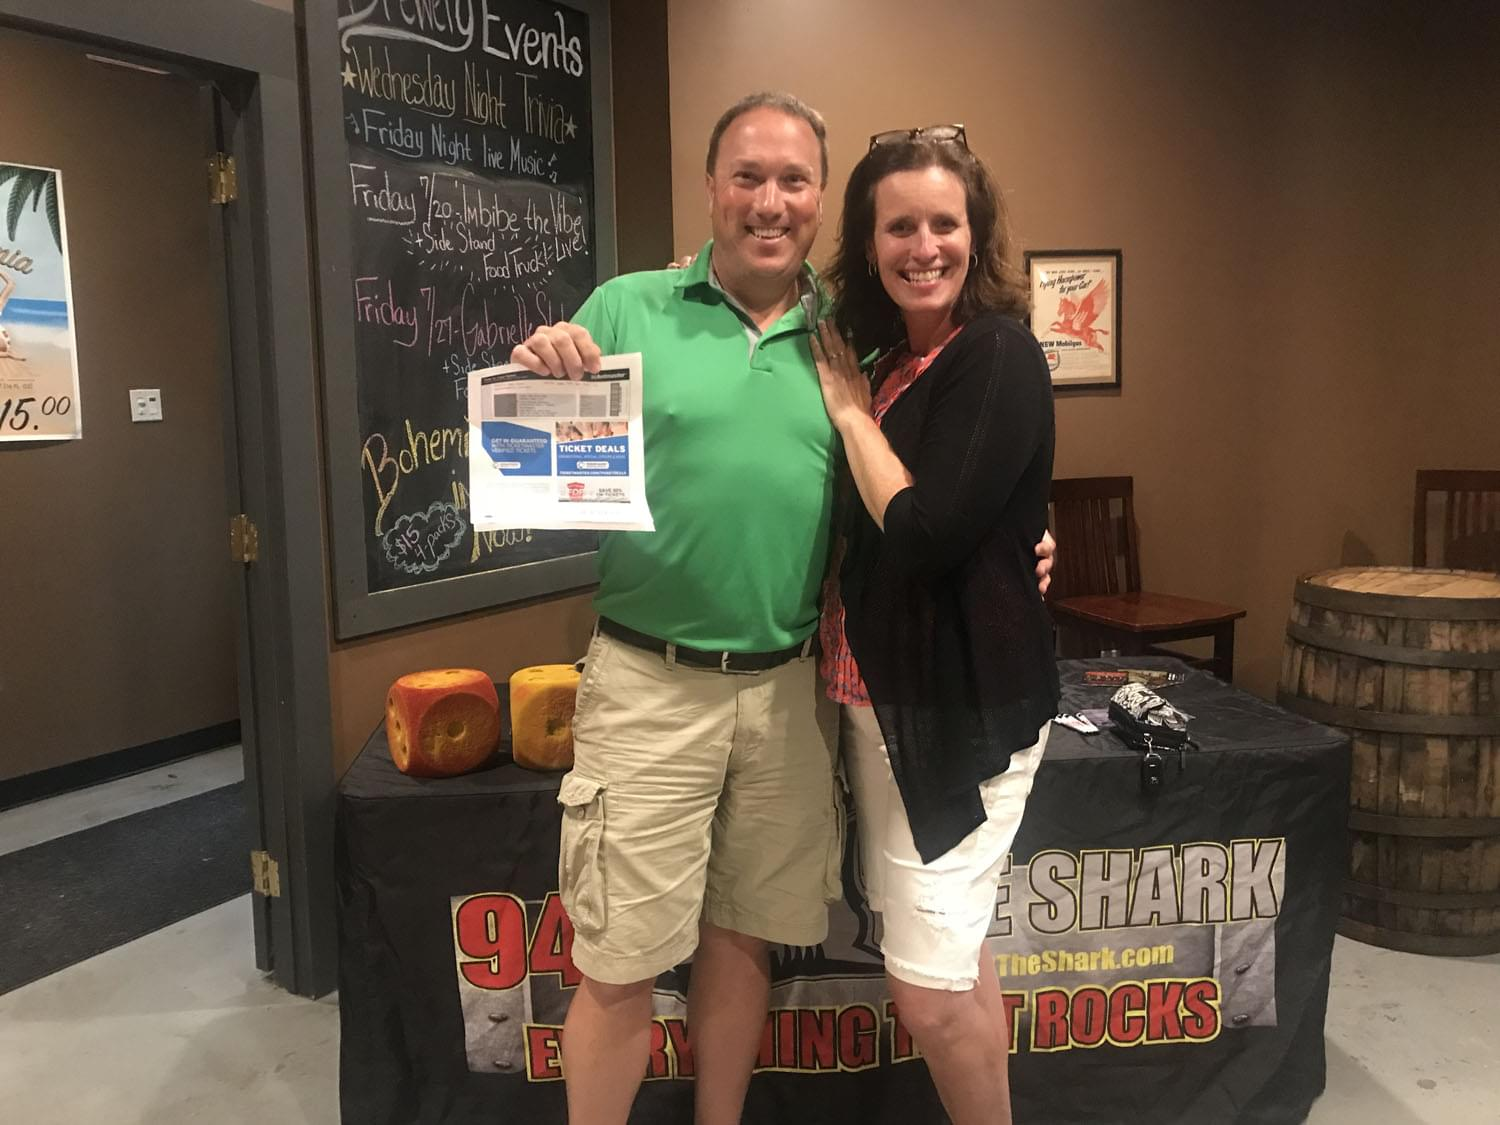 94.3 The Shark at the 1940's Brewery